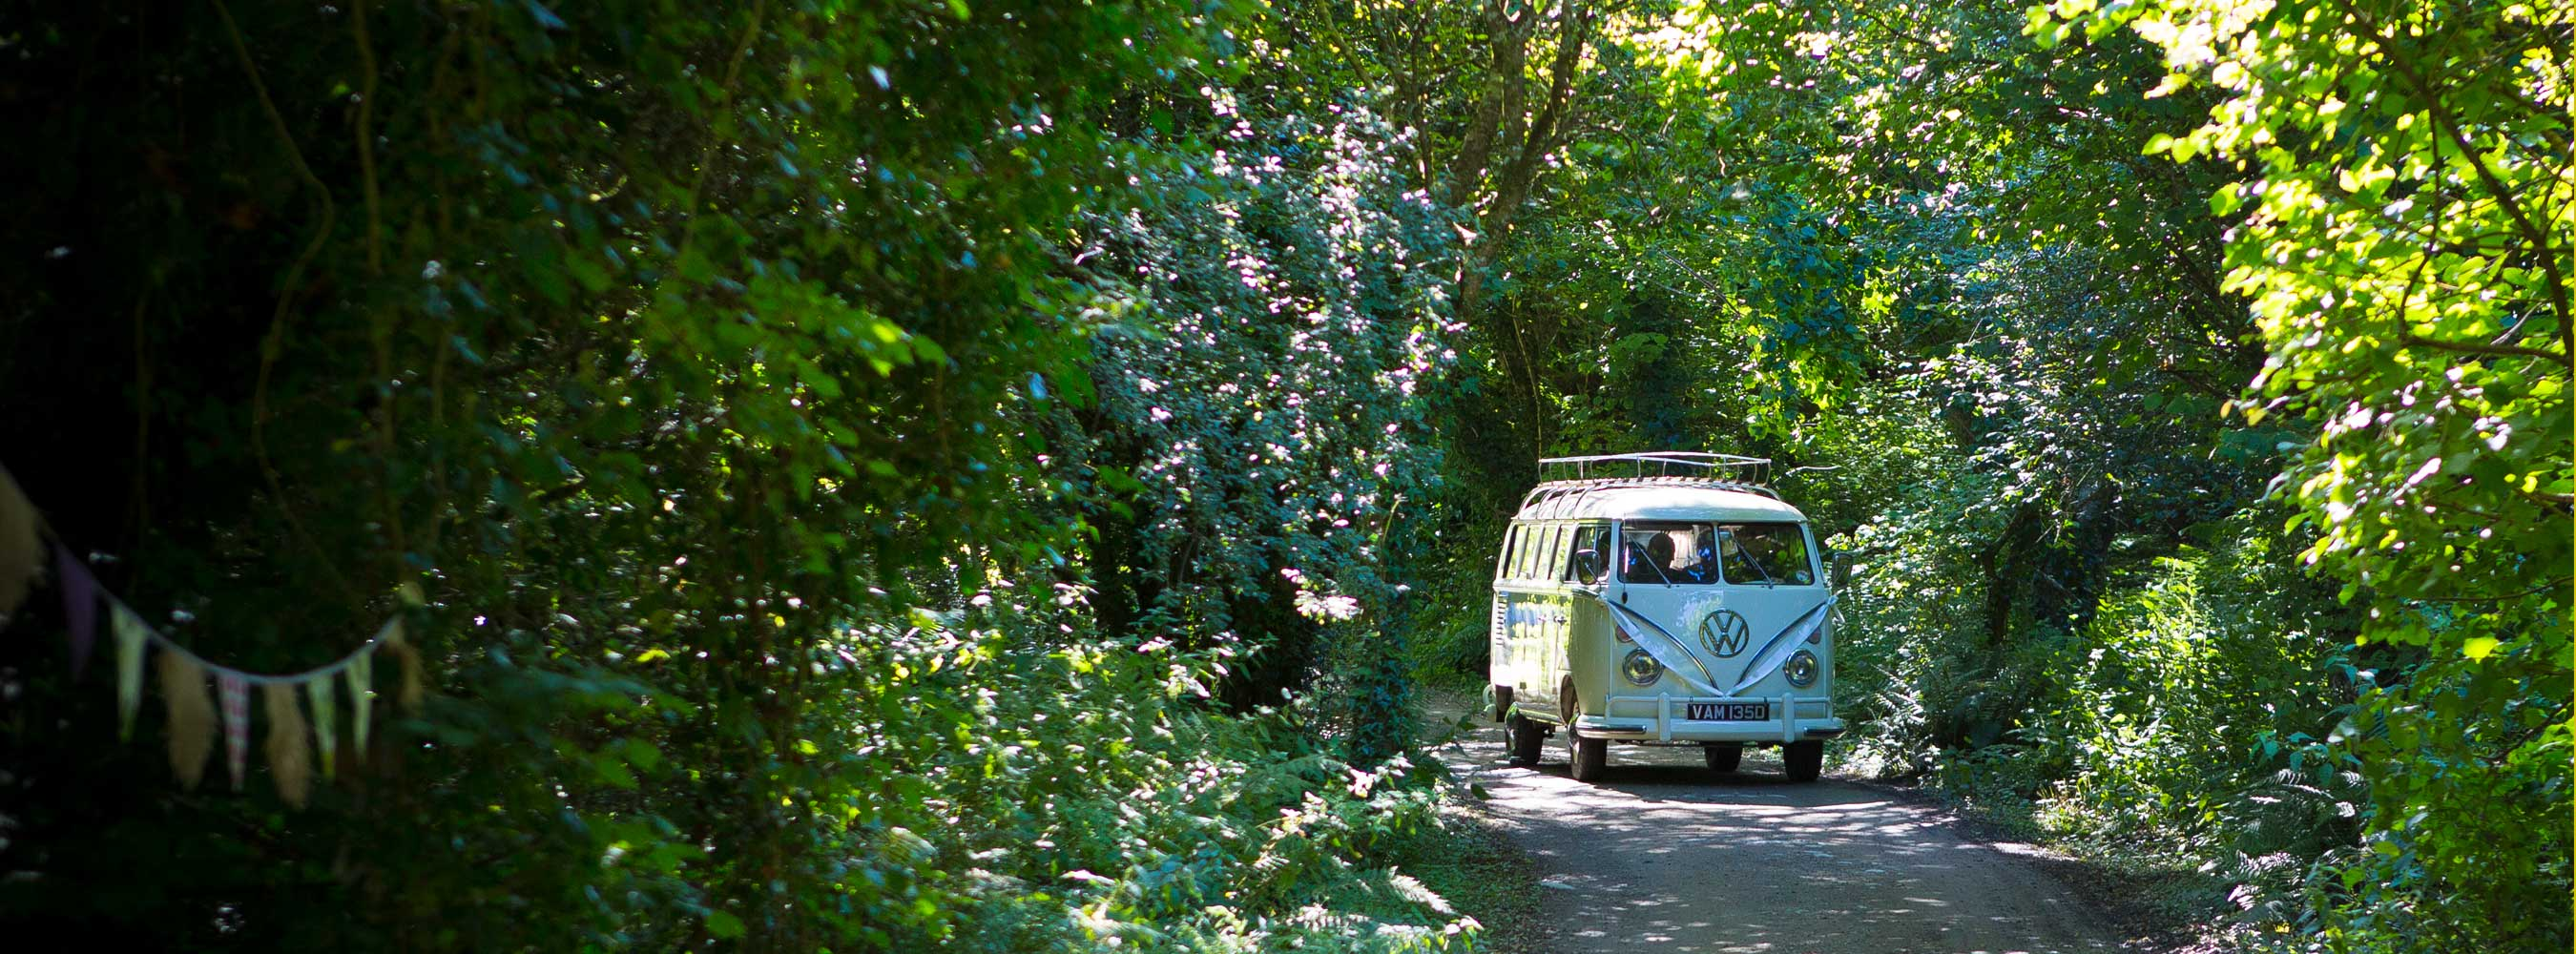 Camper Van Arrival in Woods